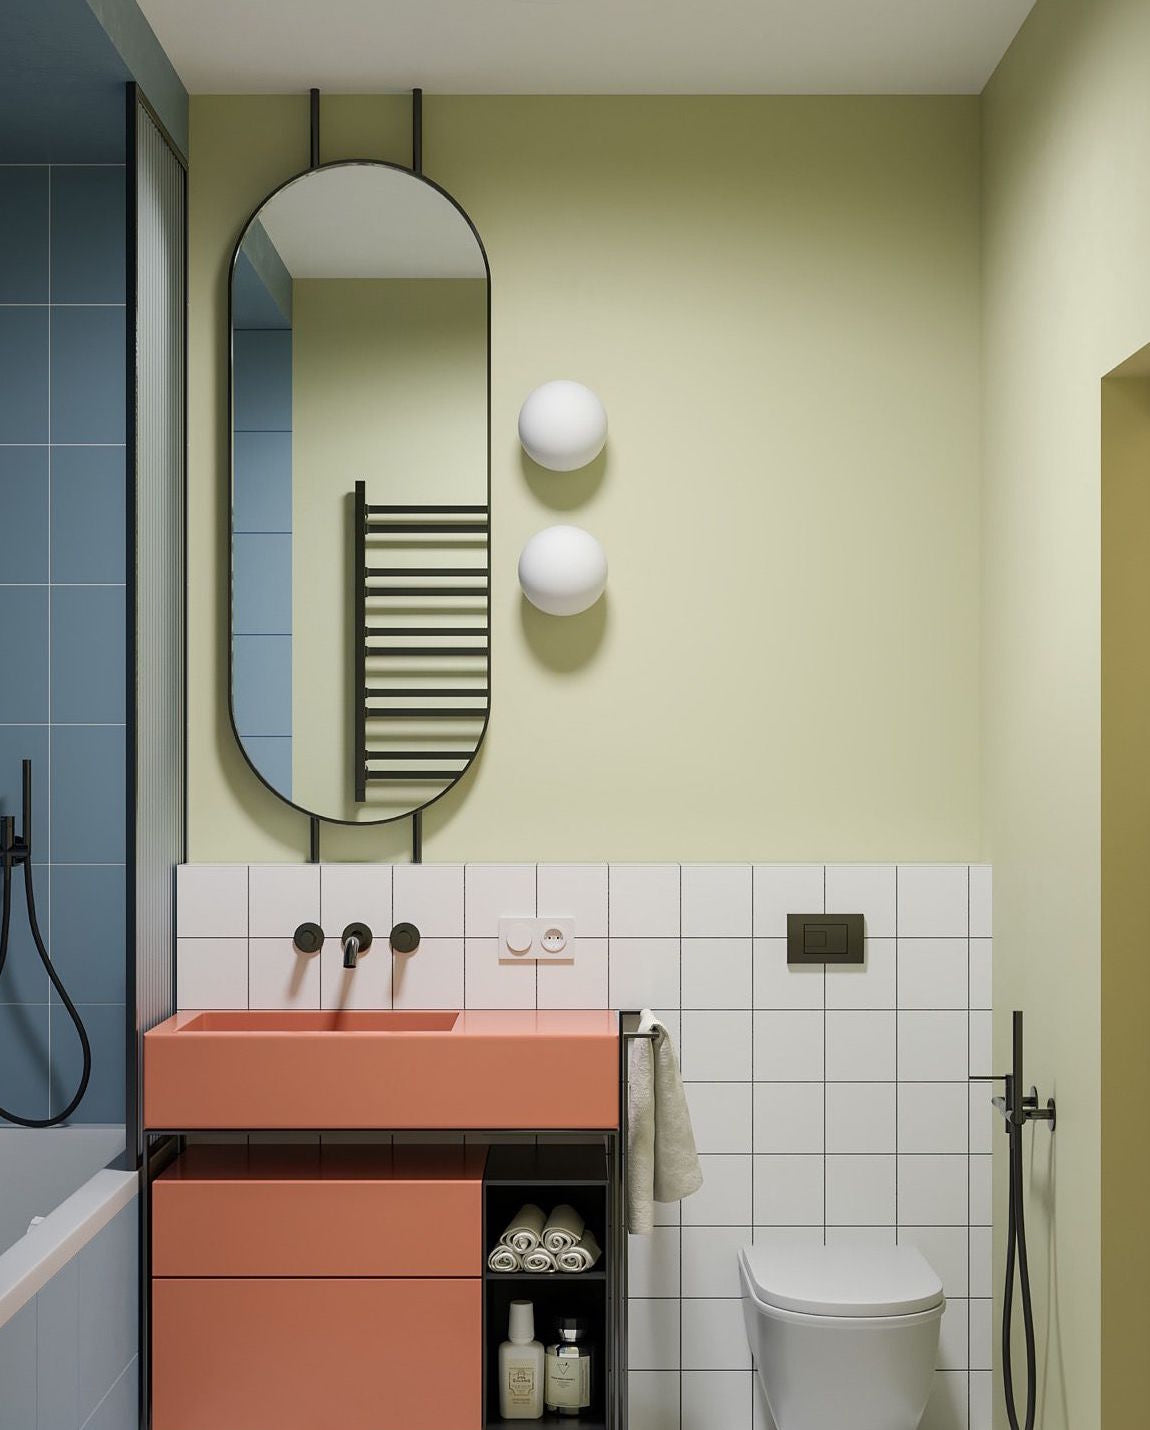 Paired bathroom wall lights in multi coloured bathroom